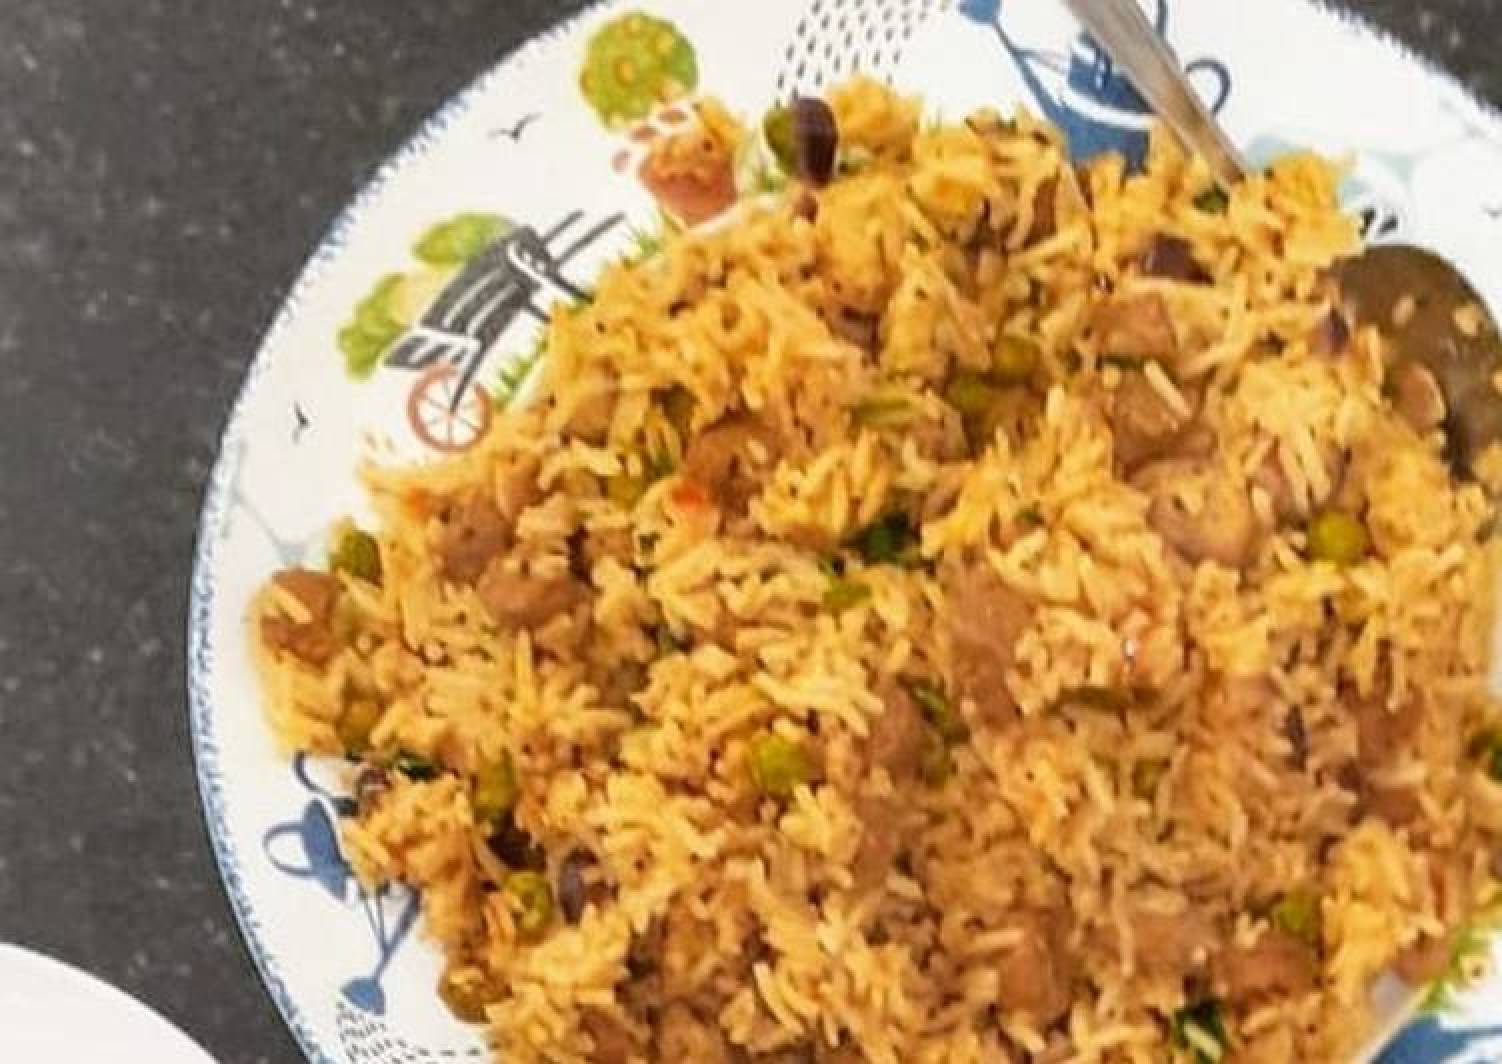 Soya nuggets fried rice